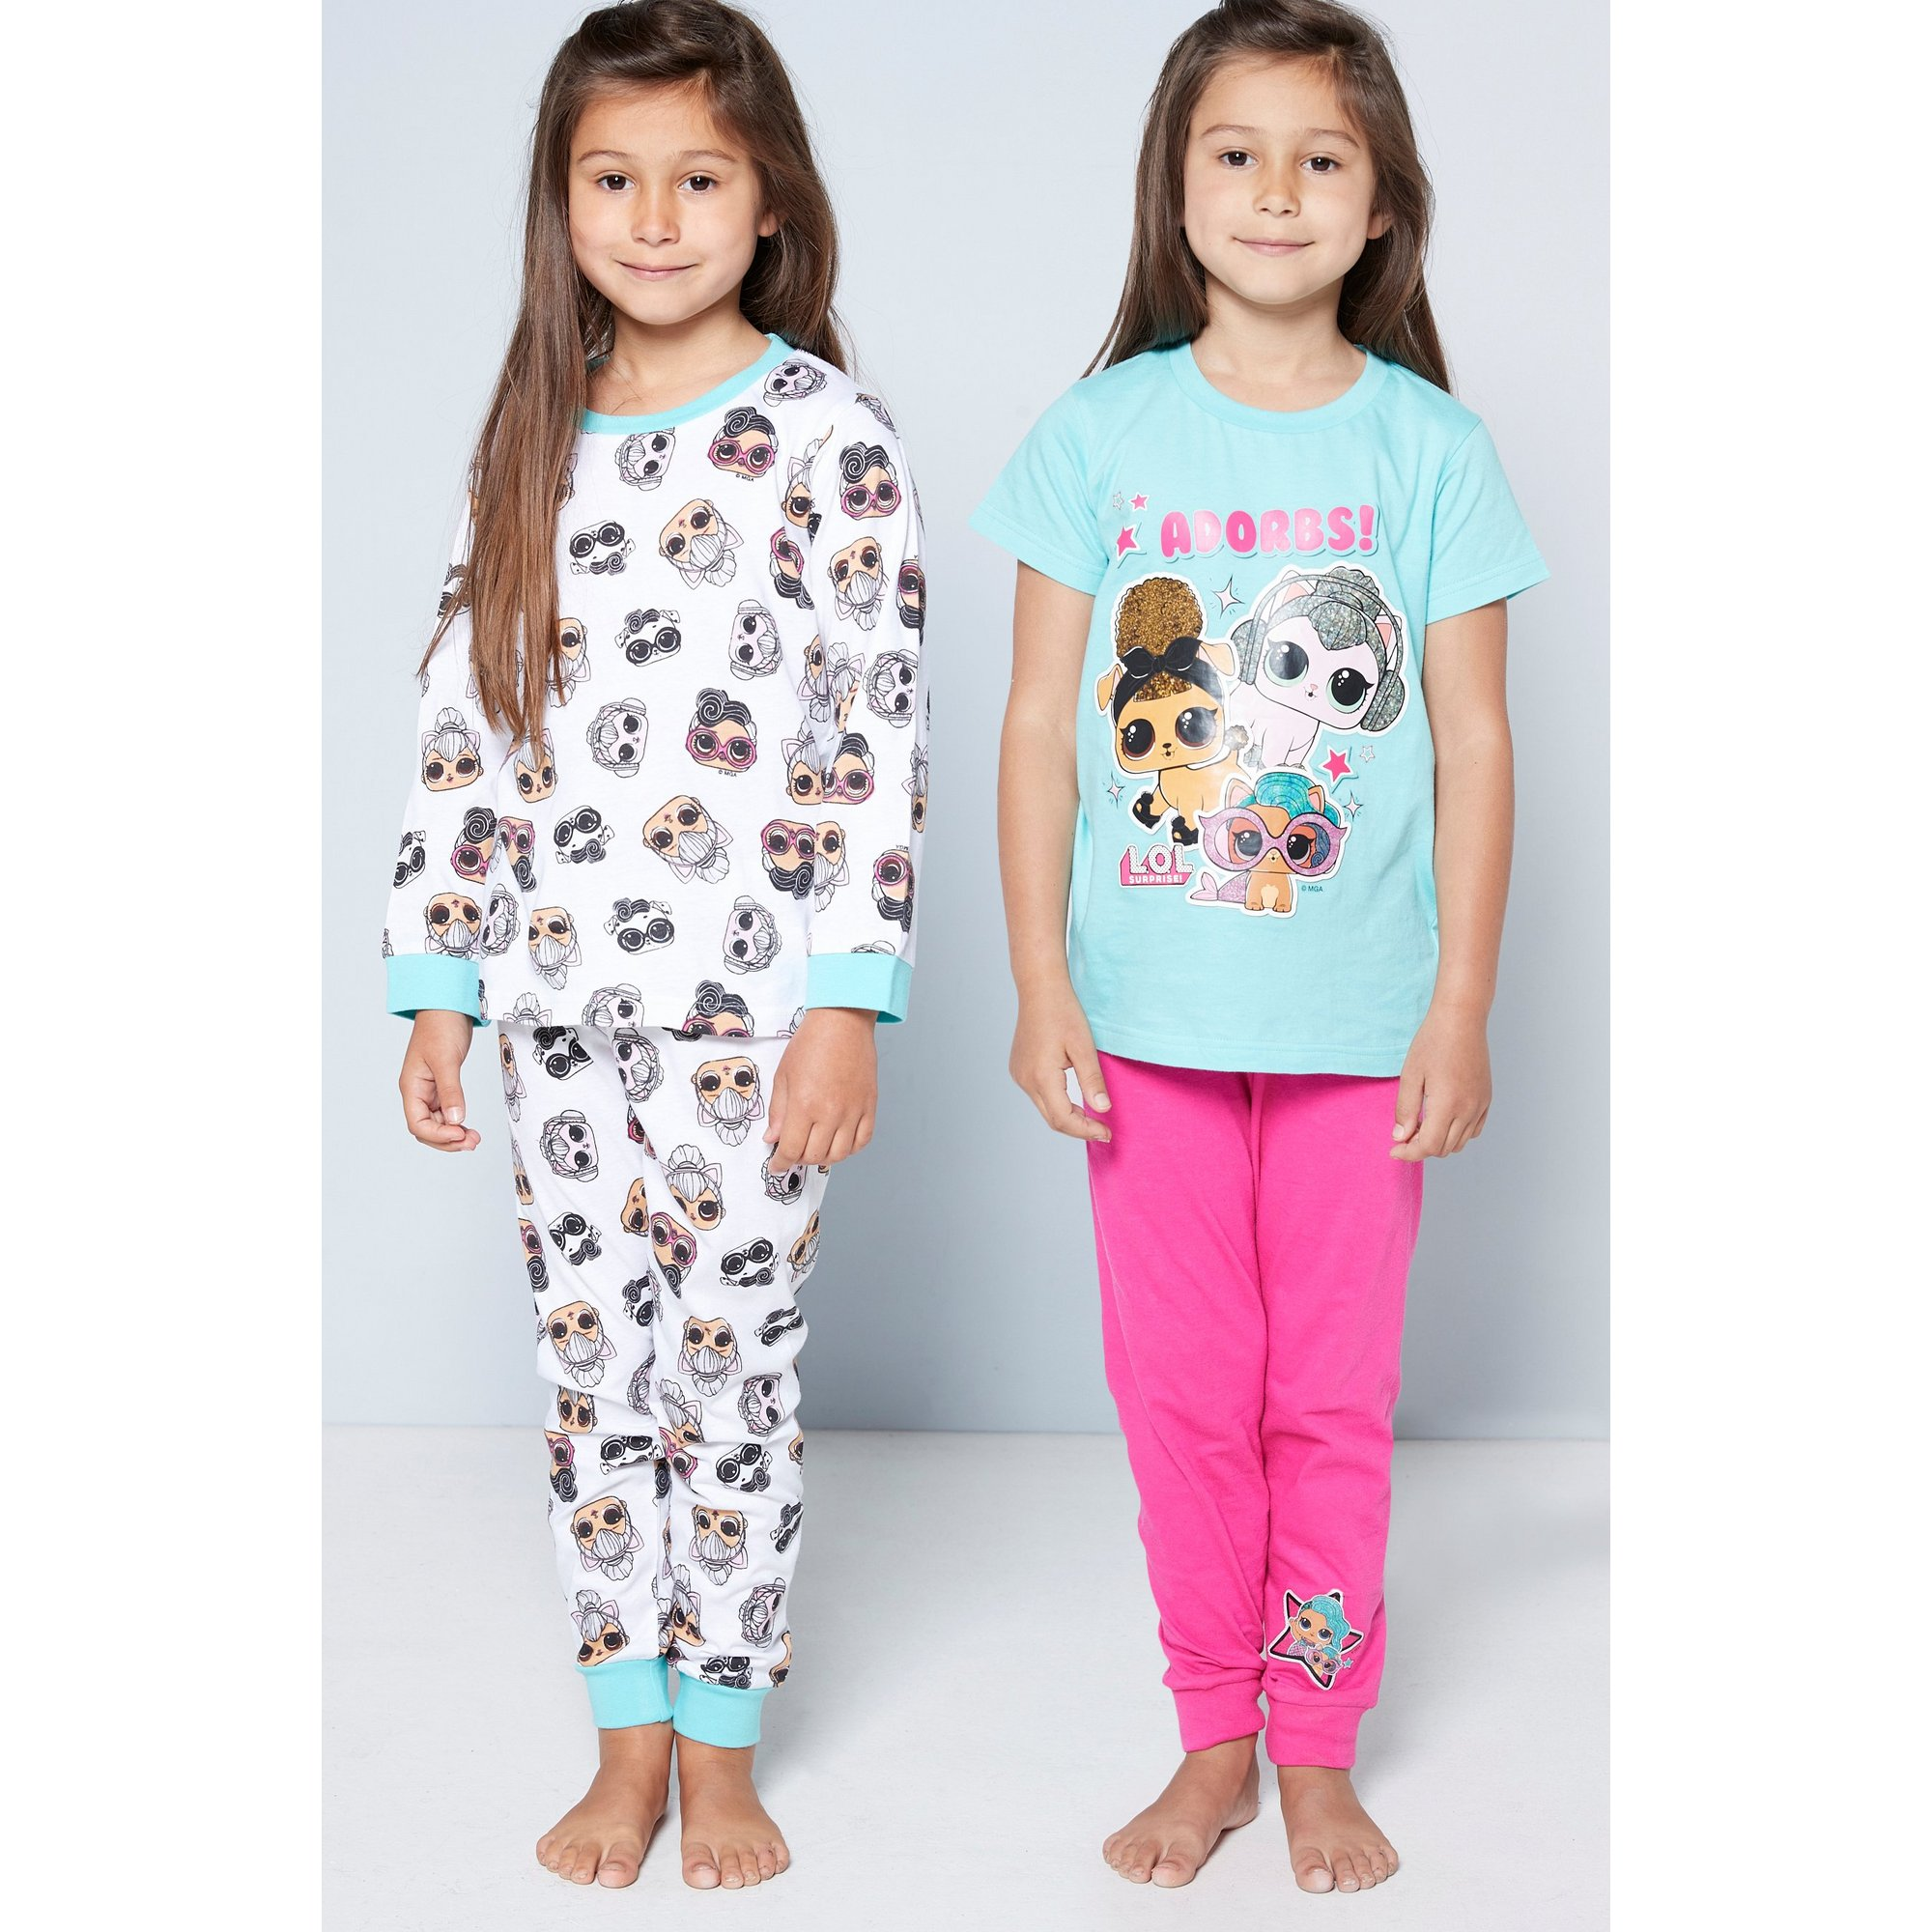 Image of Girls Pack of 2 L.O.L. Surprise! Pyjamas